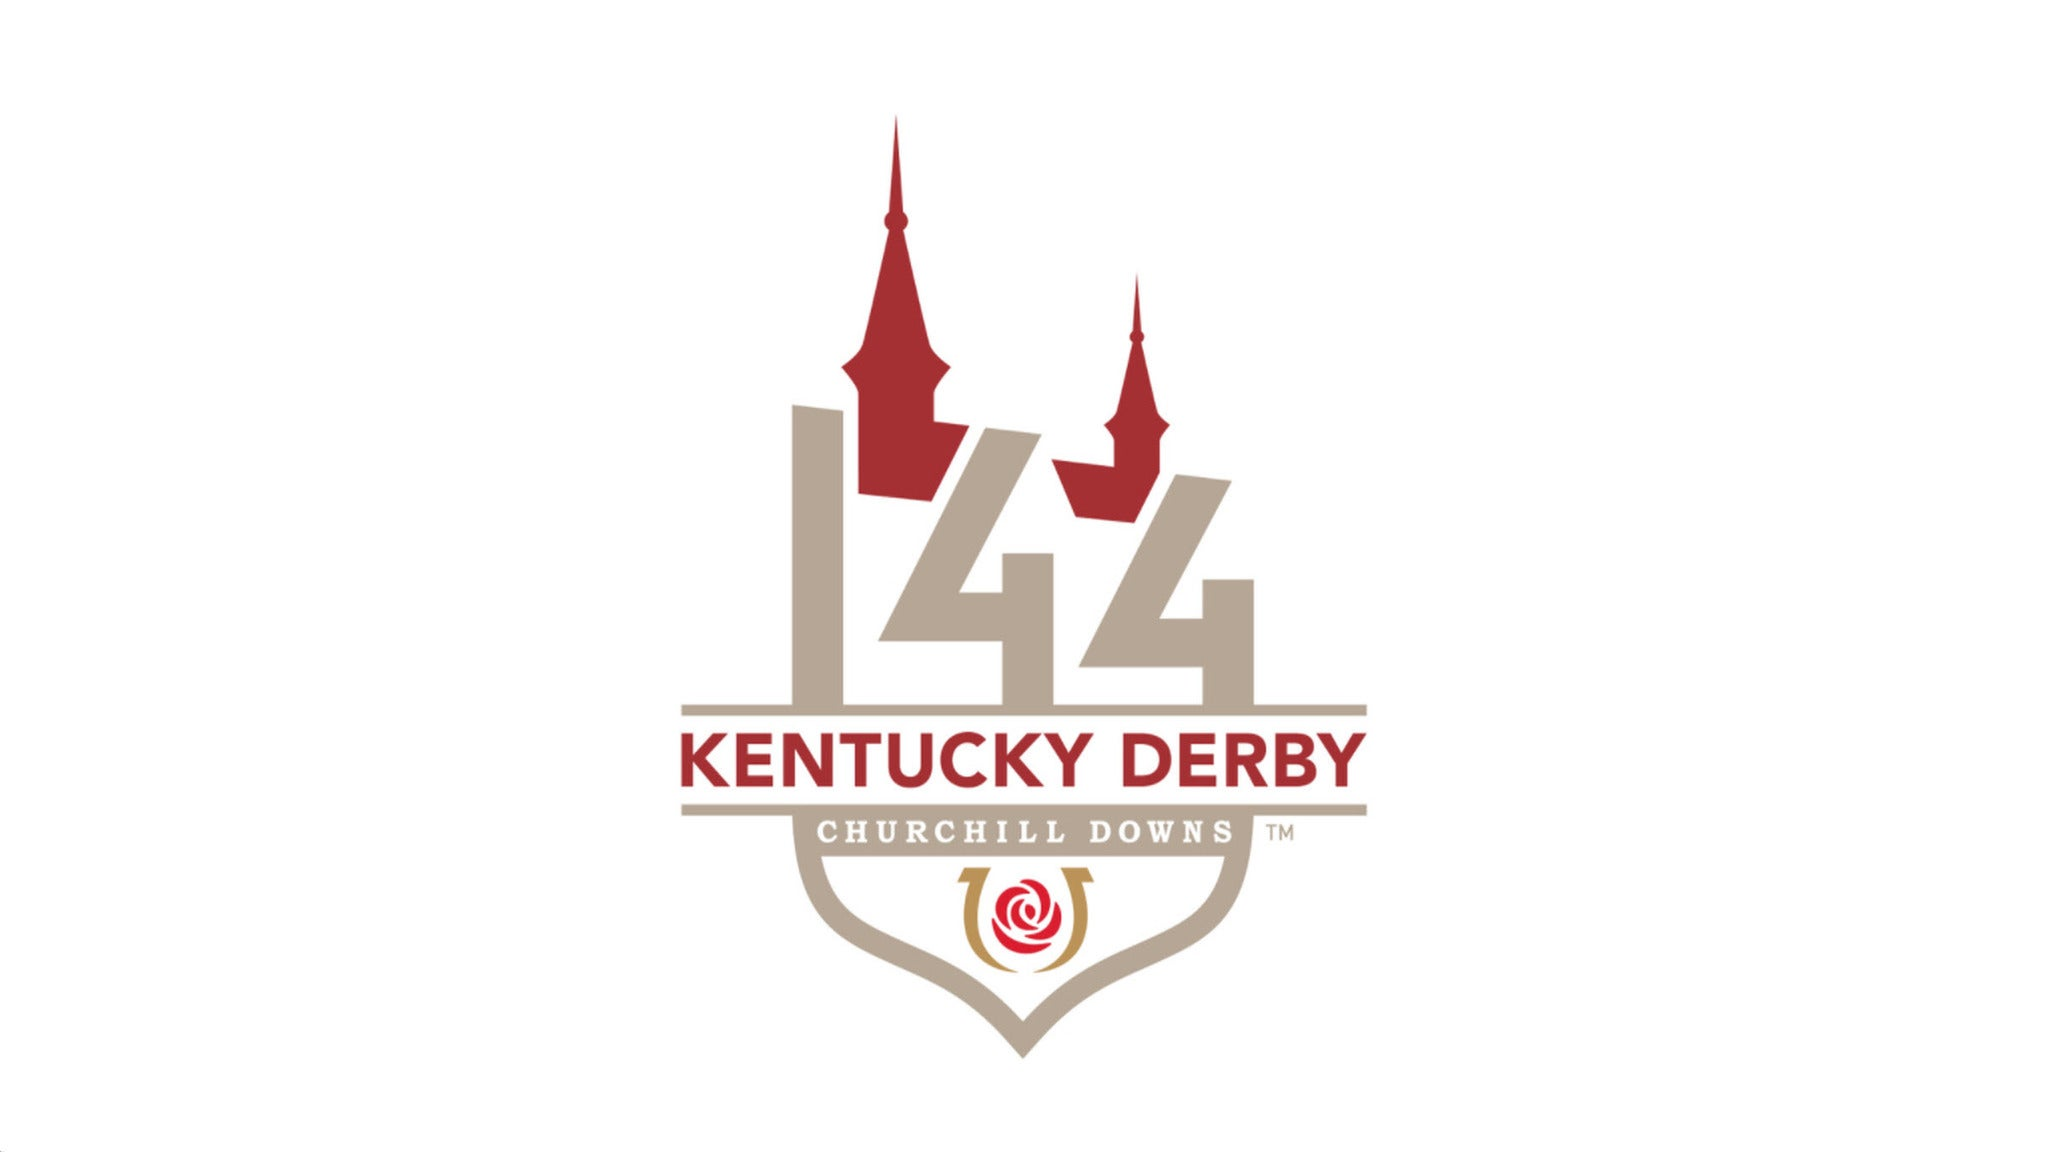 144th Kentucky Derby - Clubhouse Walk - No Seat